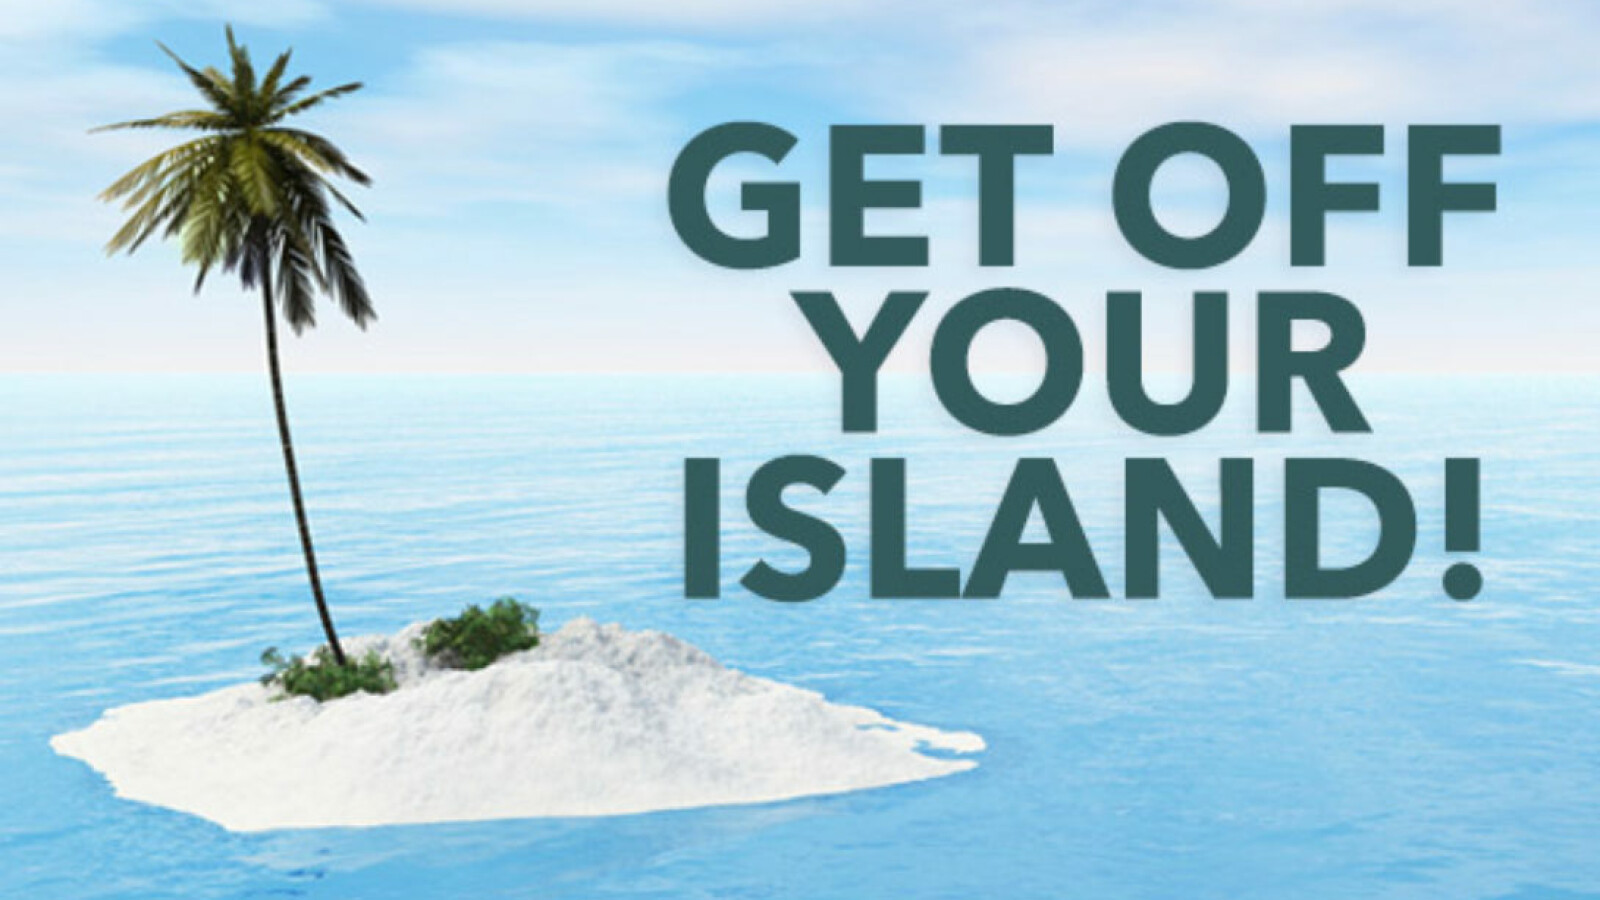 Get Off Your Island!